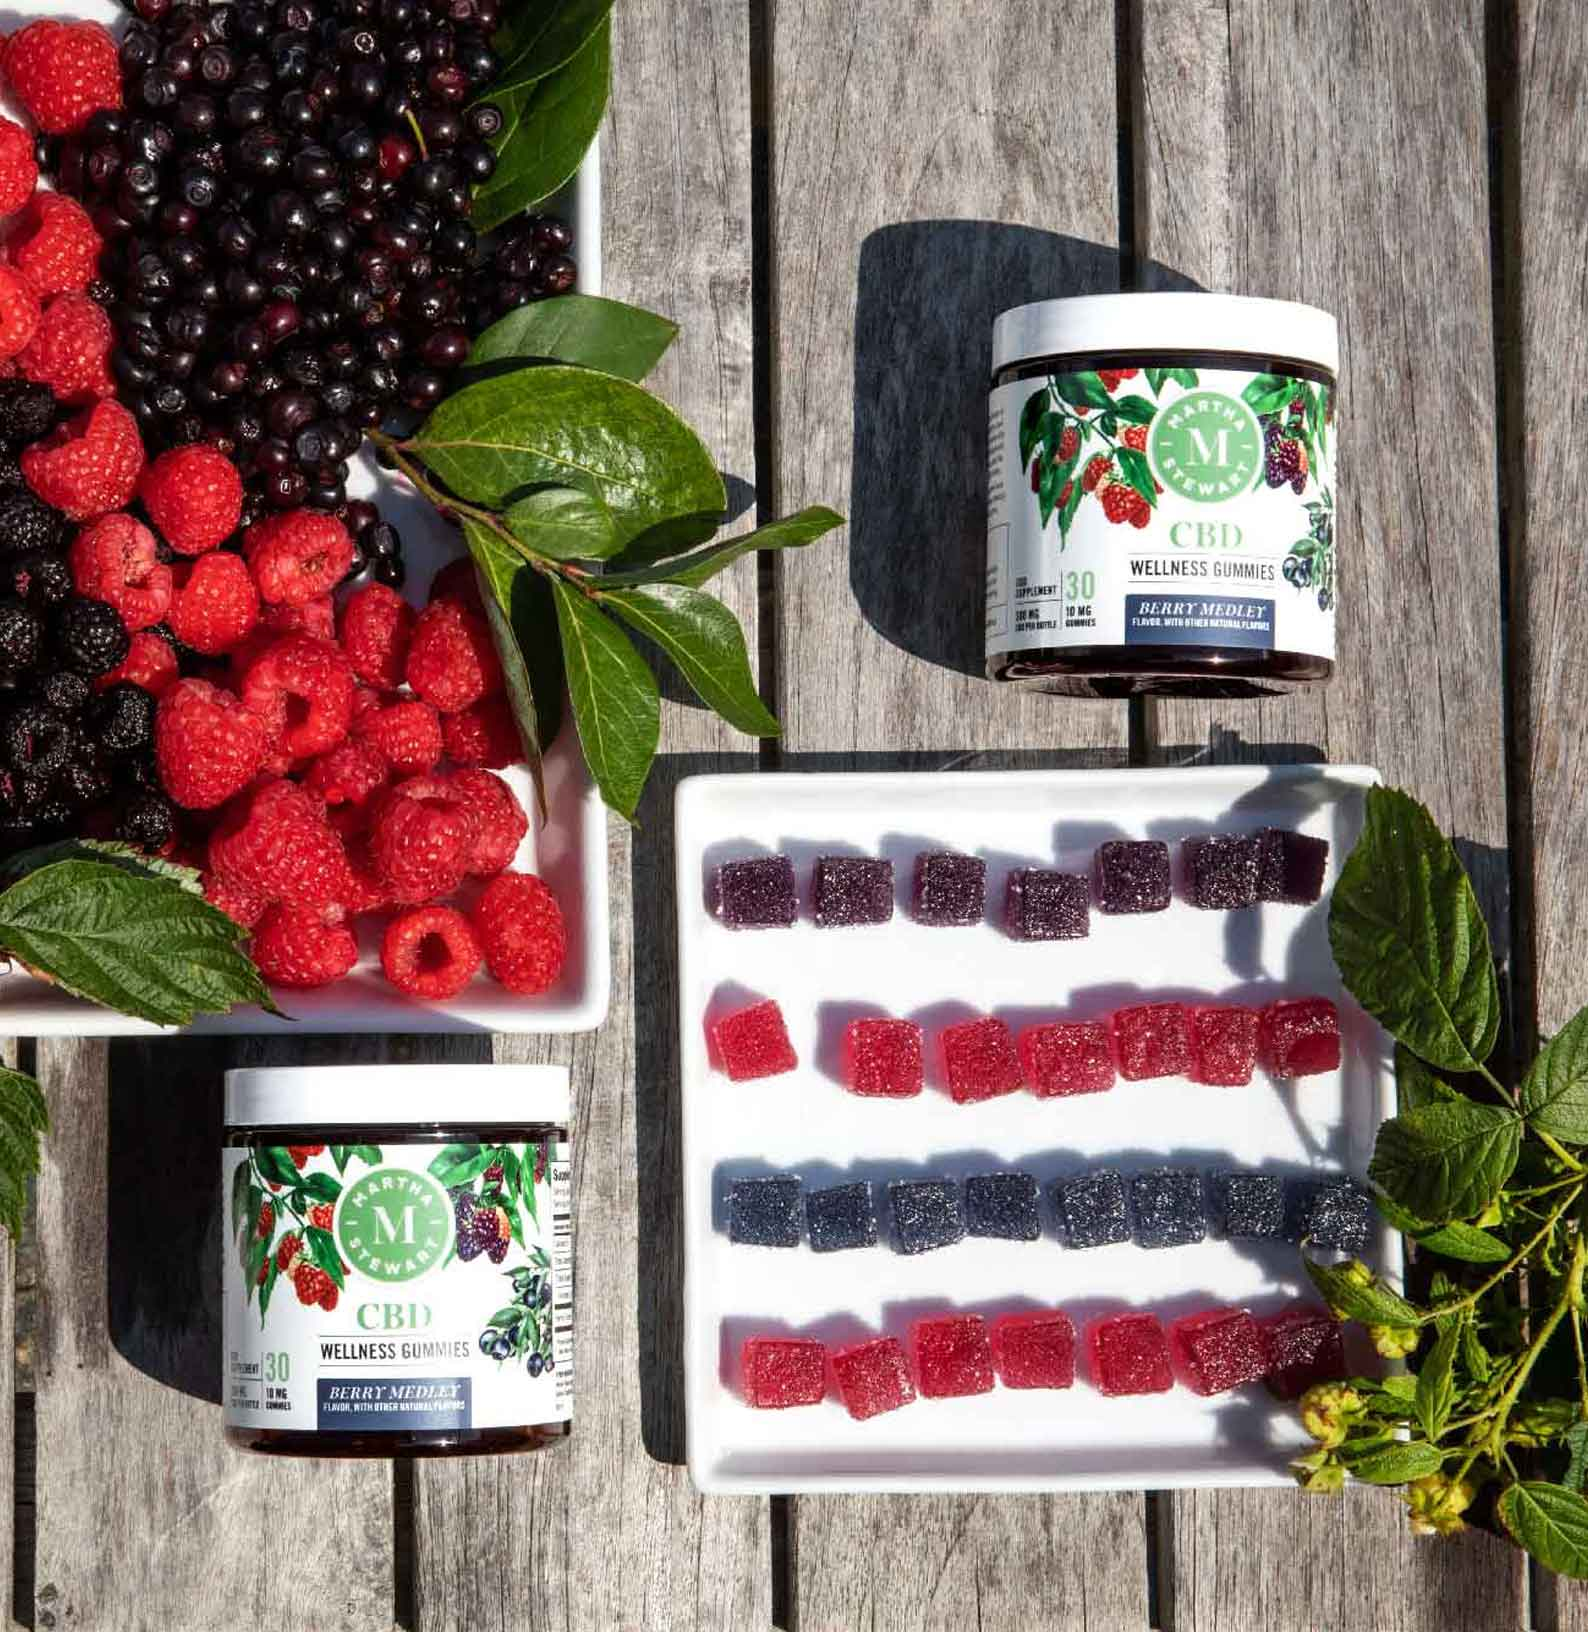 Martha Stewart CBD Wellness Berry Medley Gummies on a wooden table with berries